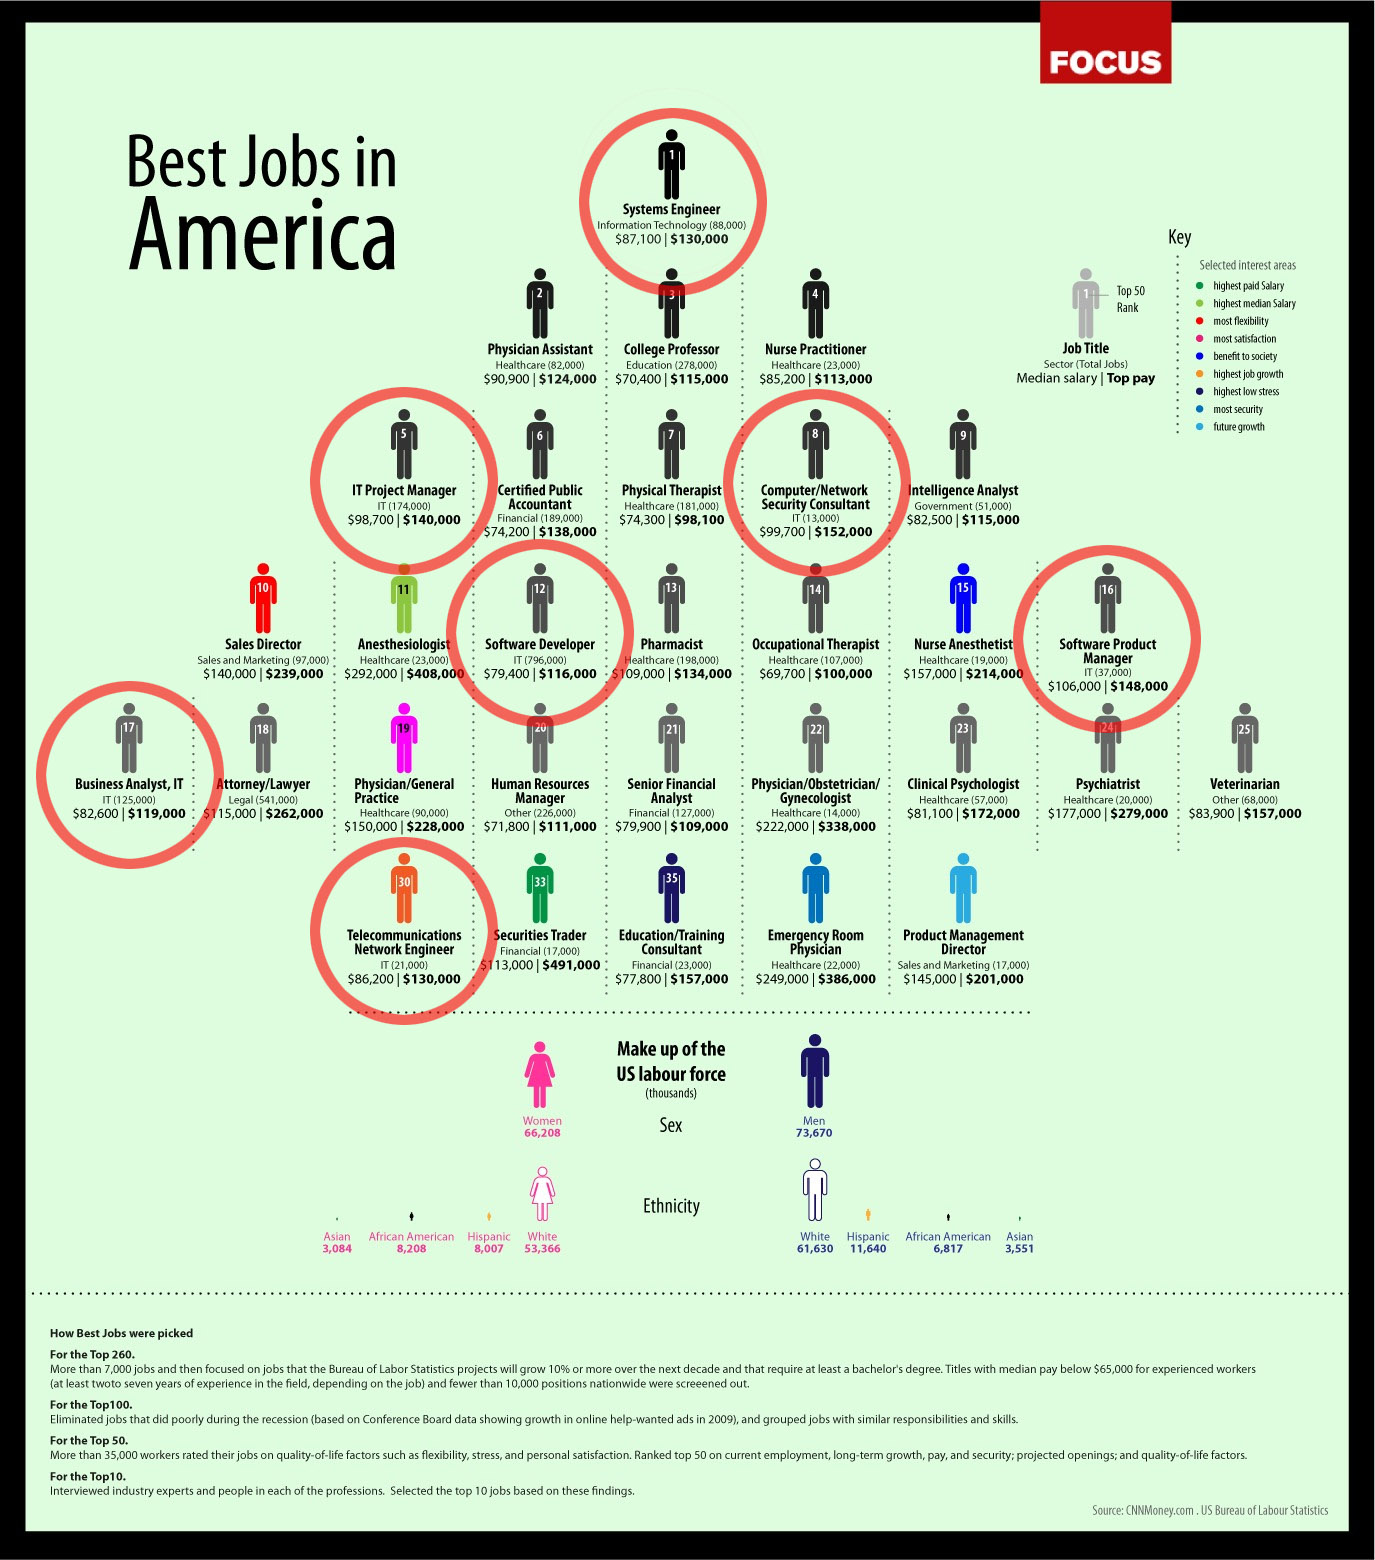 compare two majors job career fields Career field - business job listing sites career information & resources career guides: and more, covering major careers and industries.